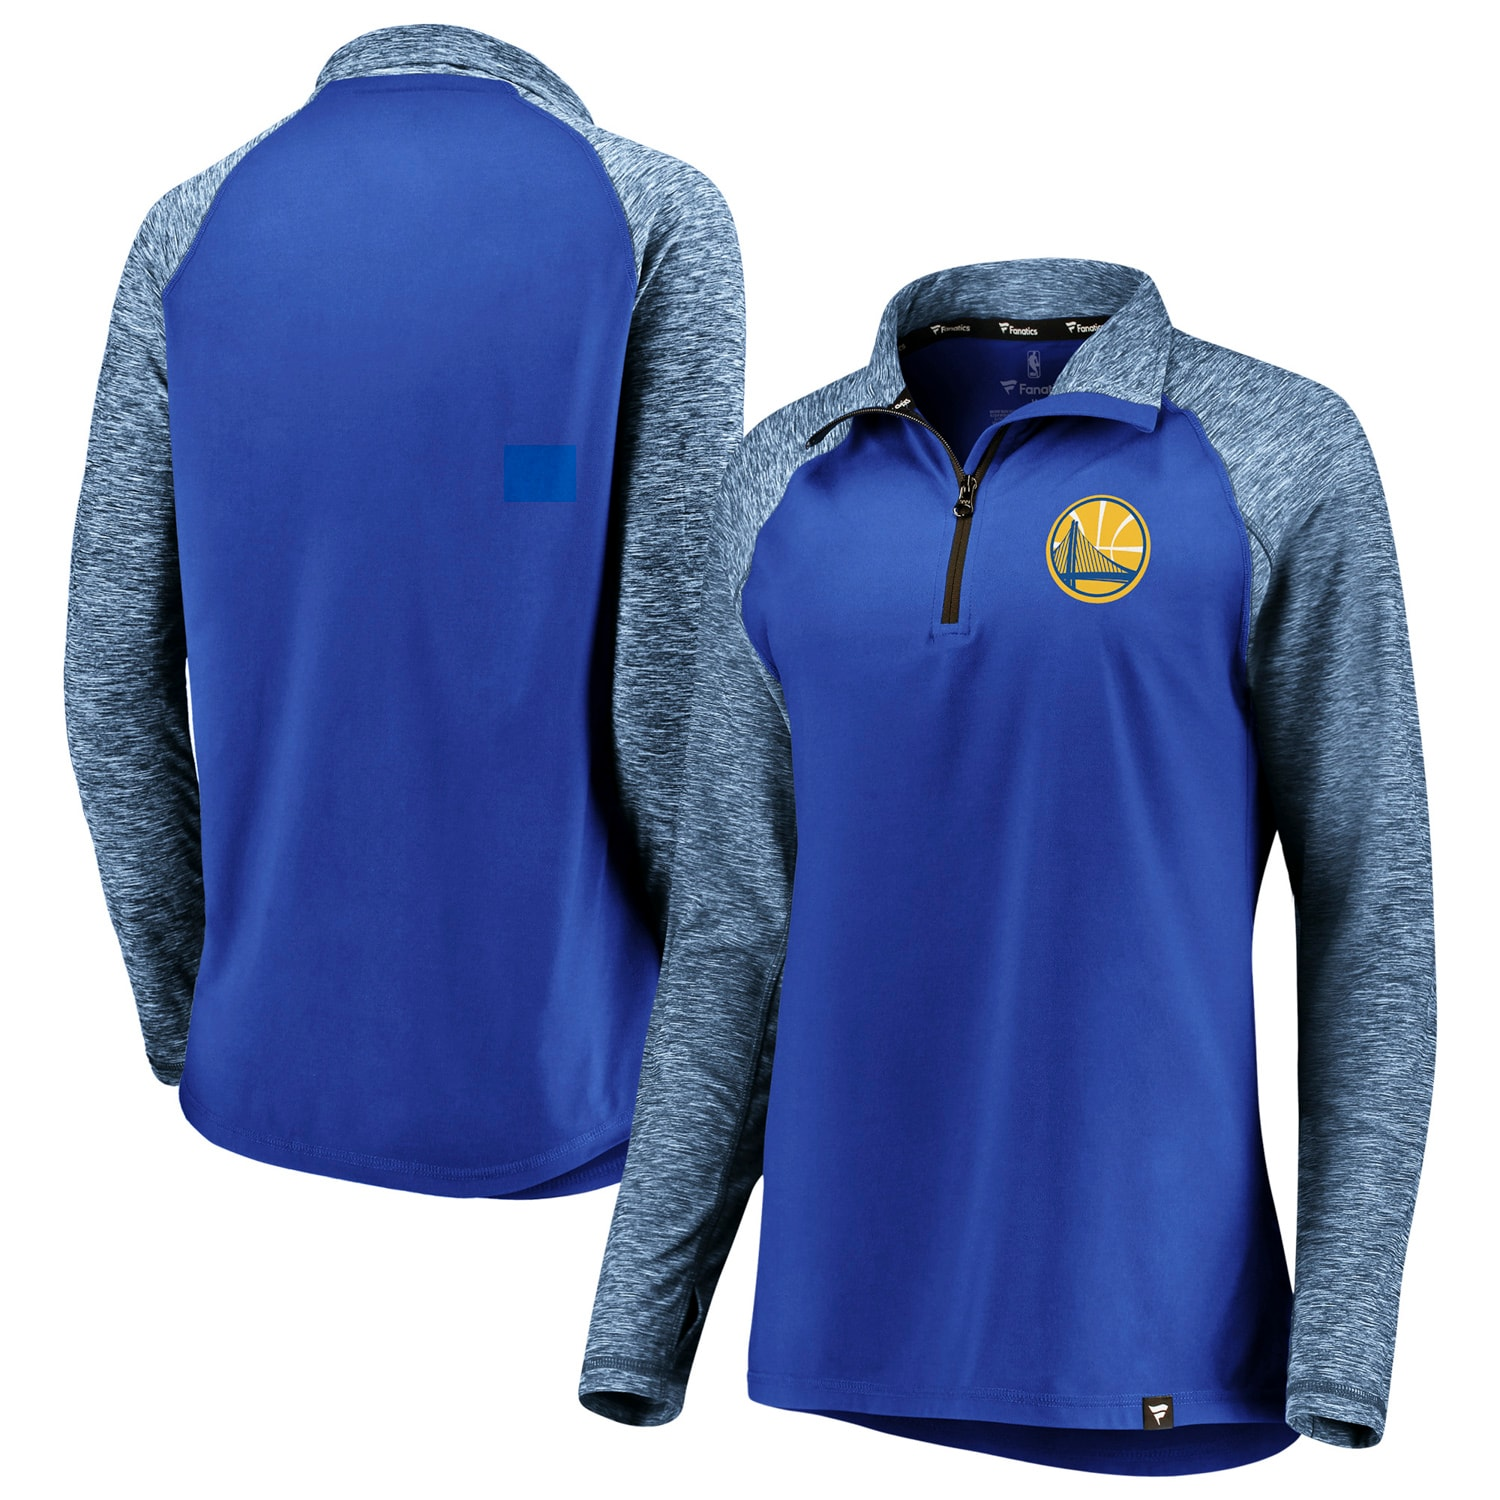 Golden State Warriors Fanatics Branded Women's Made to Move Static Performance Raglan Sleeve Quarter-Zip Pullover Jacket - Royal/Heathered Royal